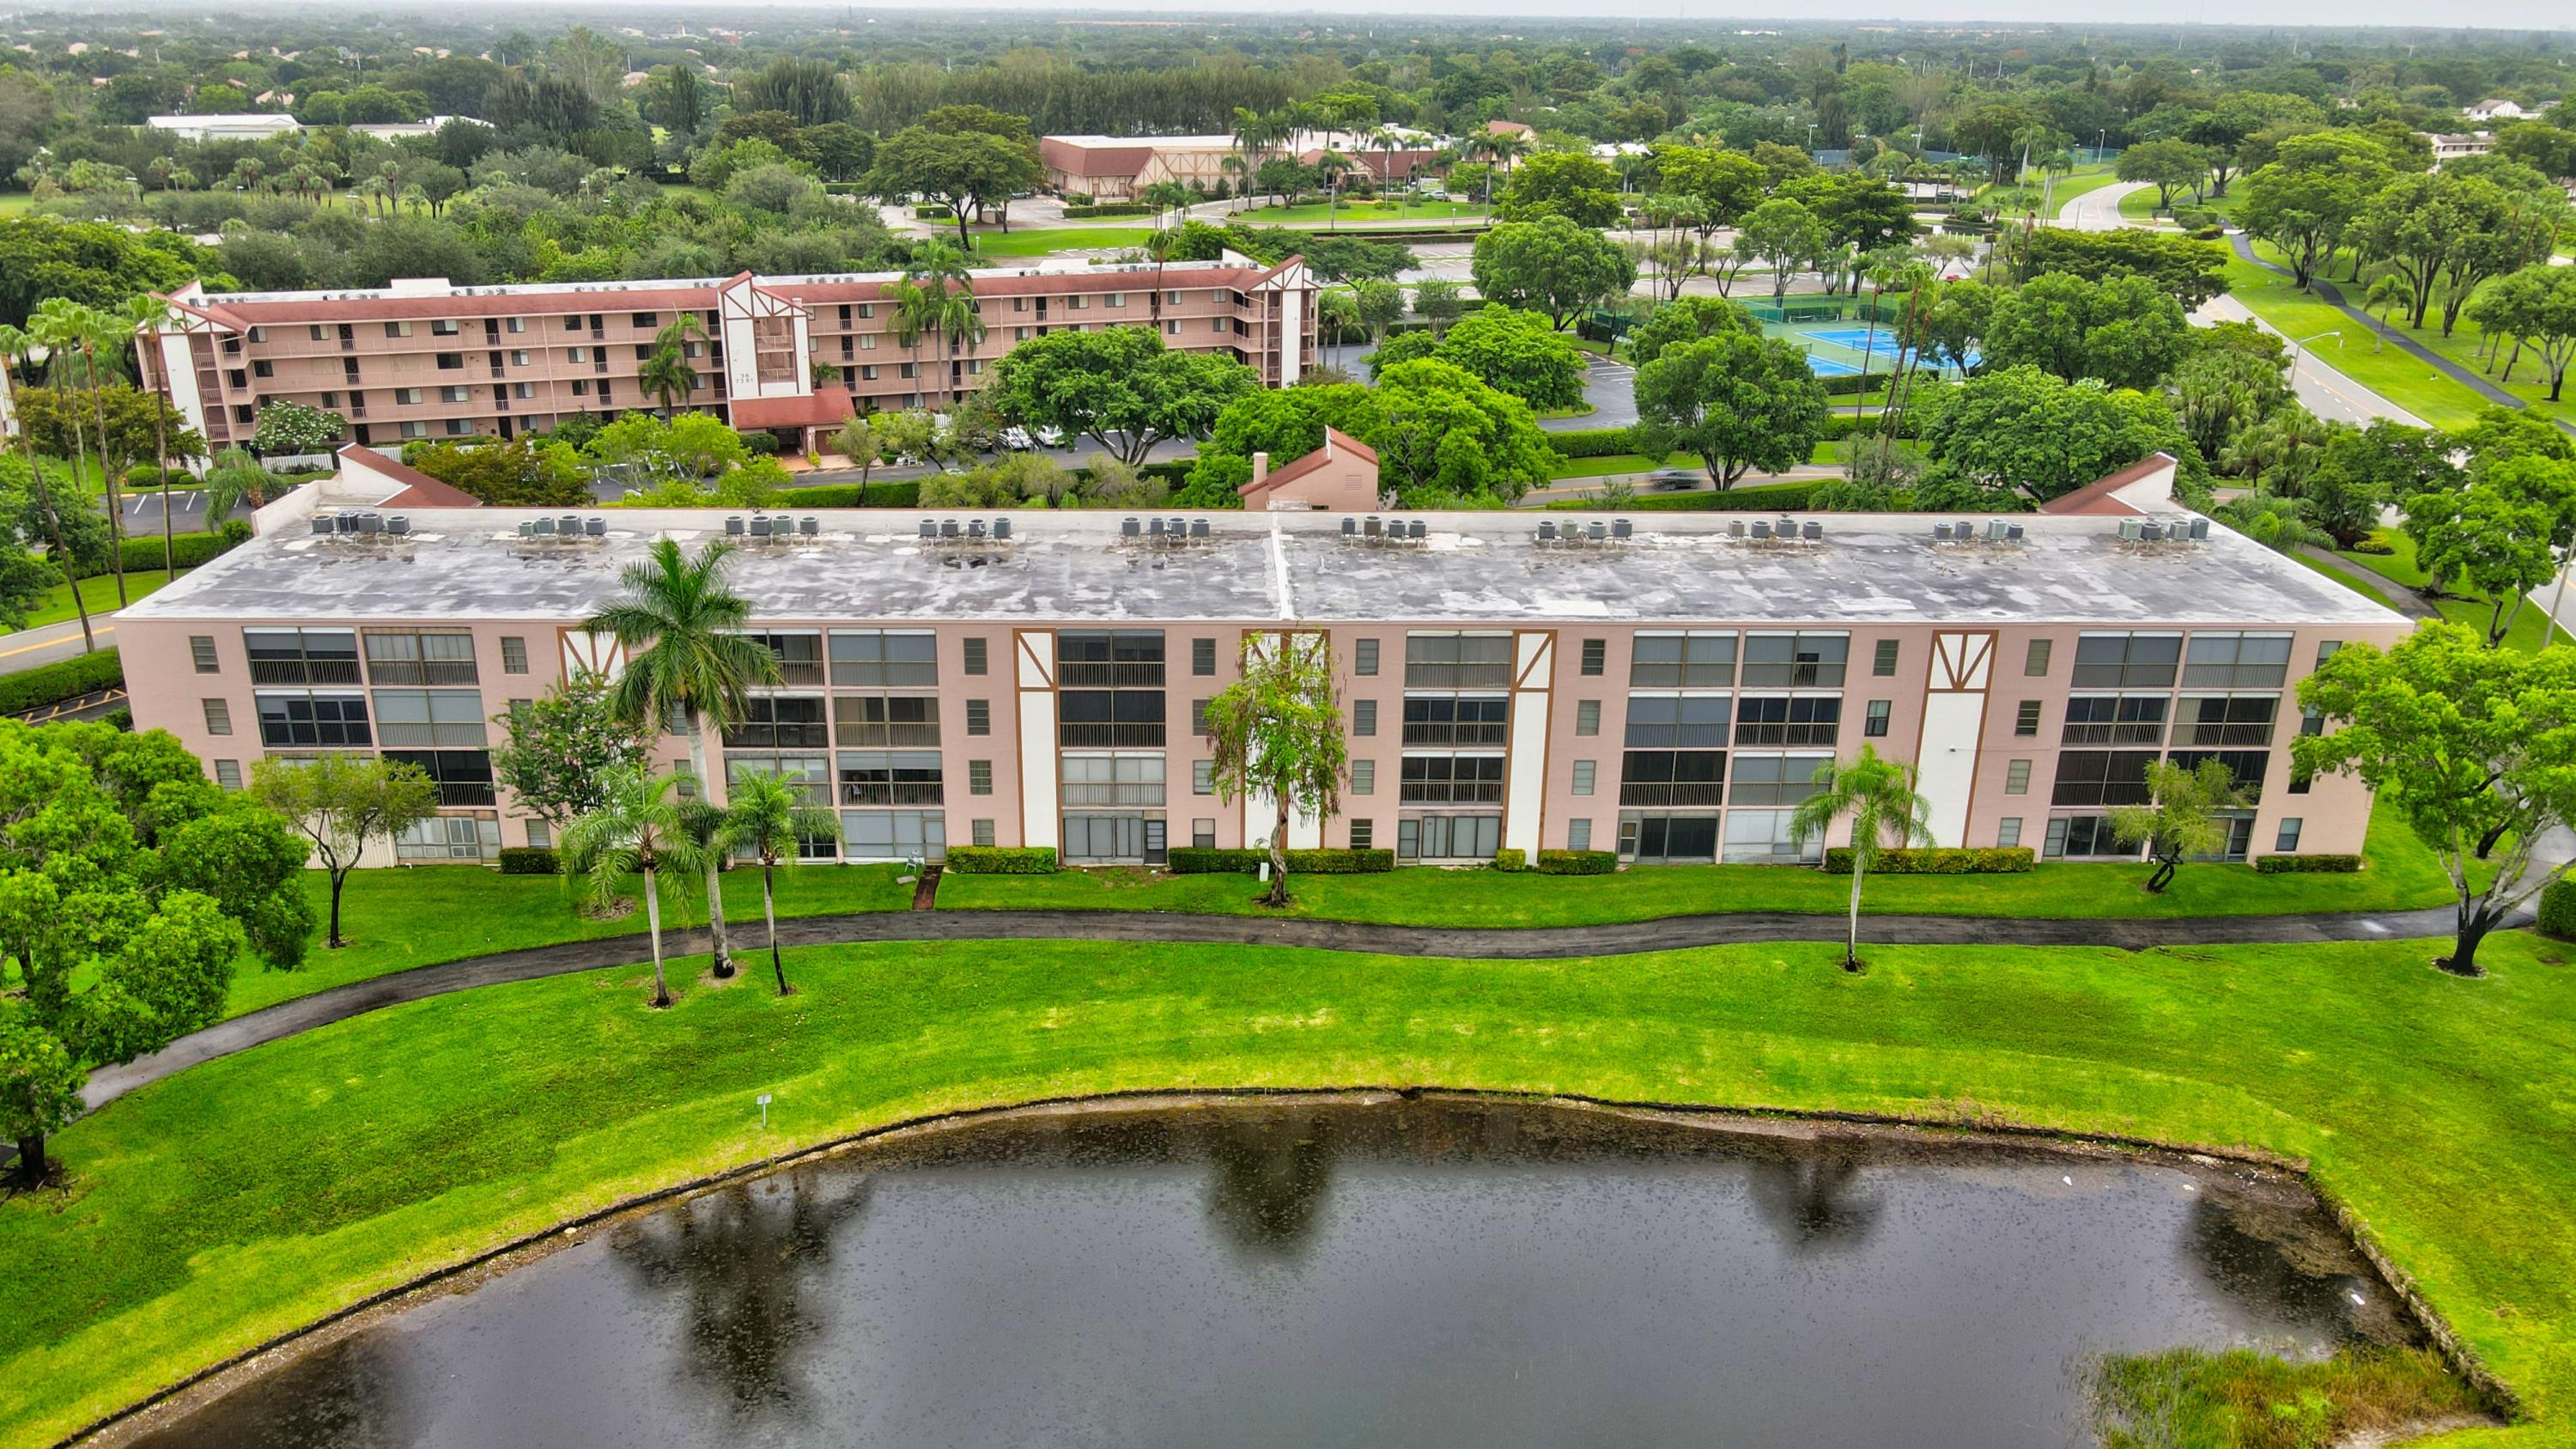 7280  Amberly Lane 204 For Sale 10724993, FL